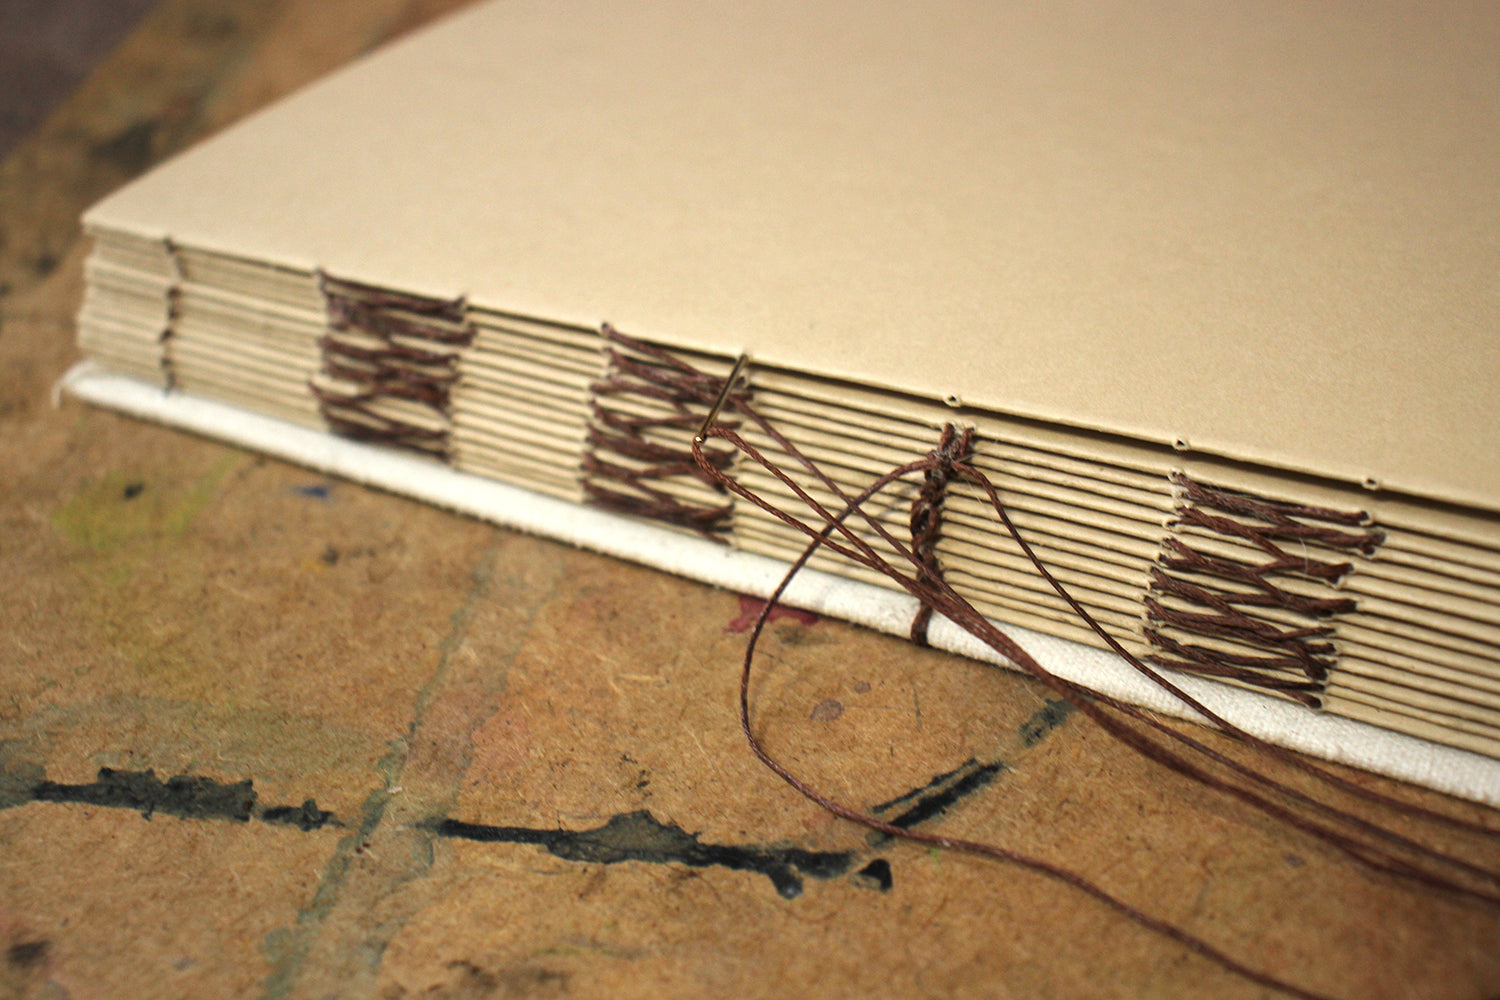 Sewing the book